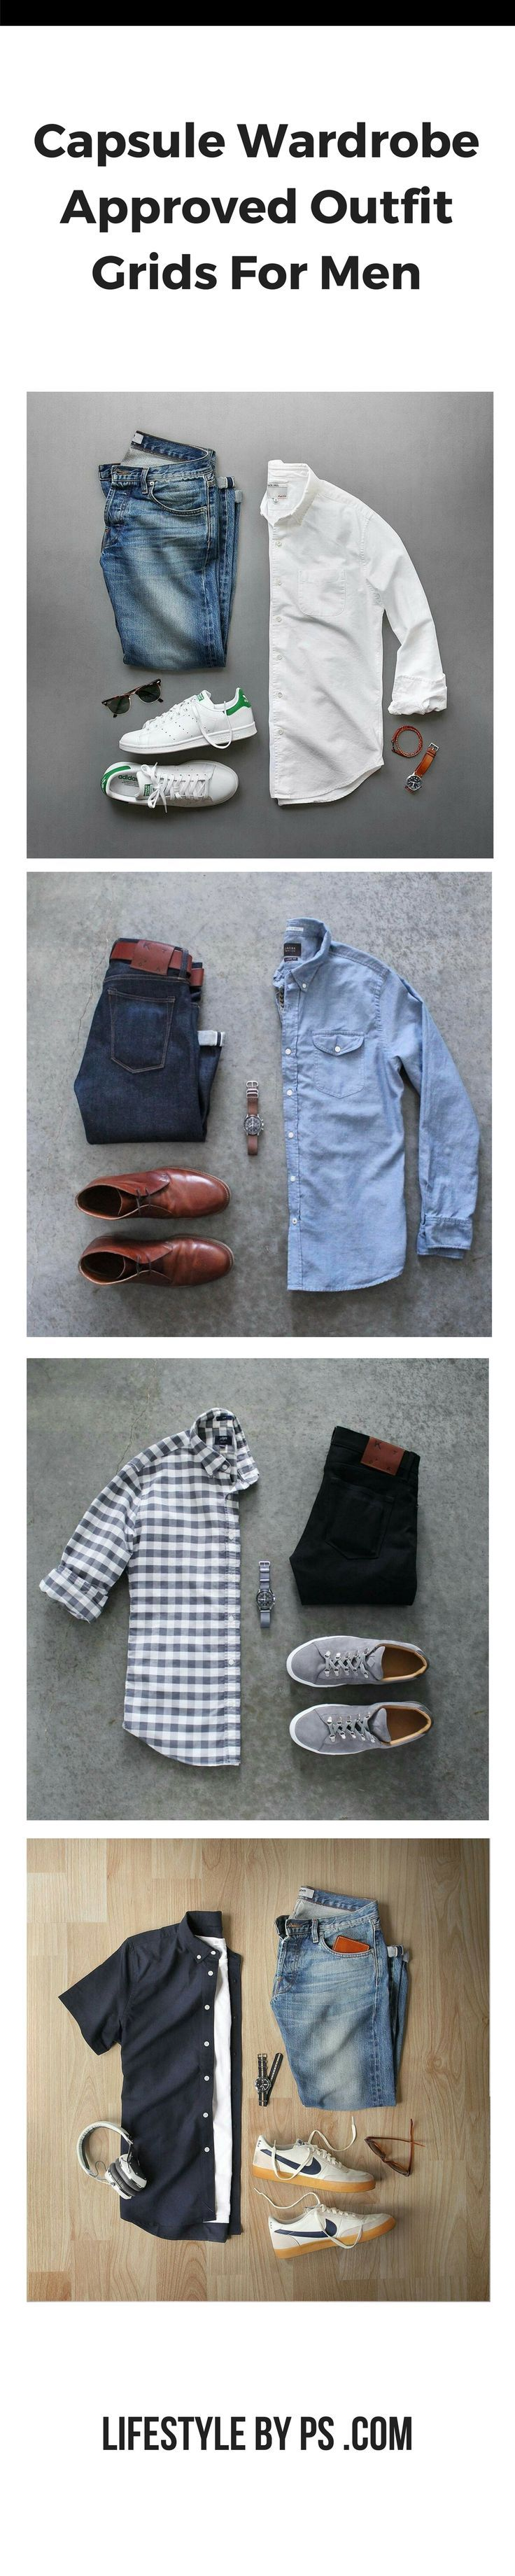 Capsule wardrobe outfit grids for men mens fashion tap the link